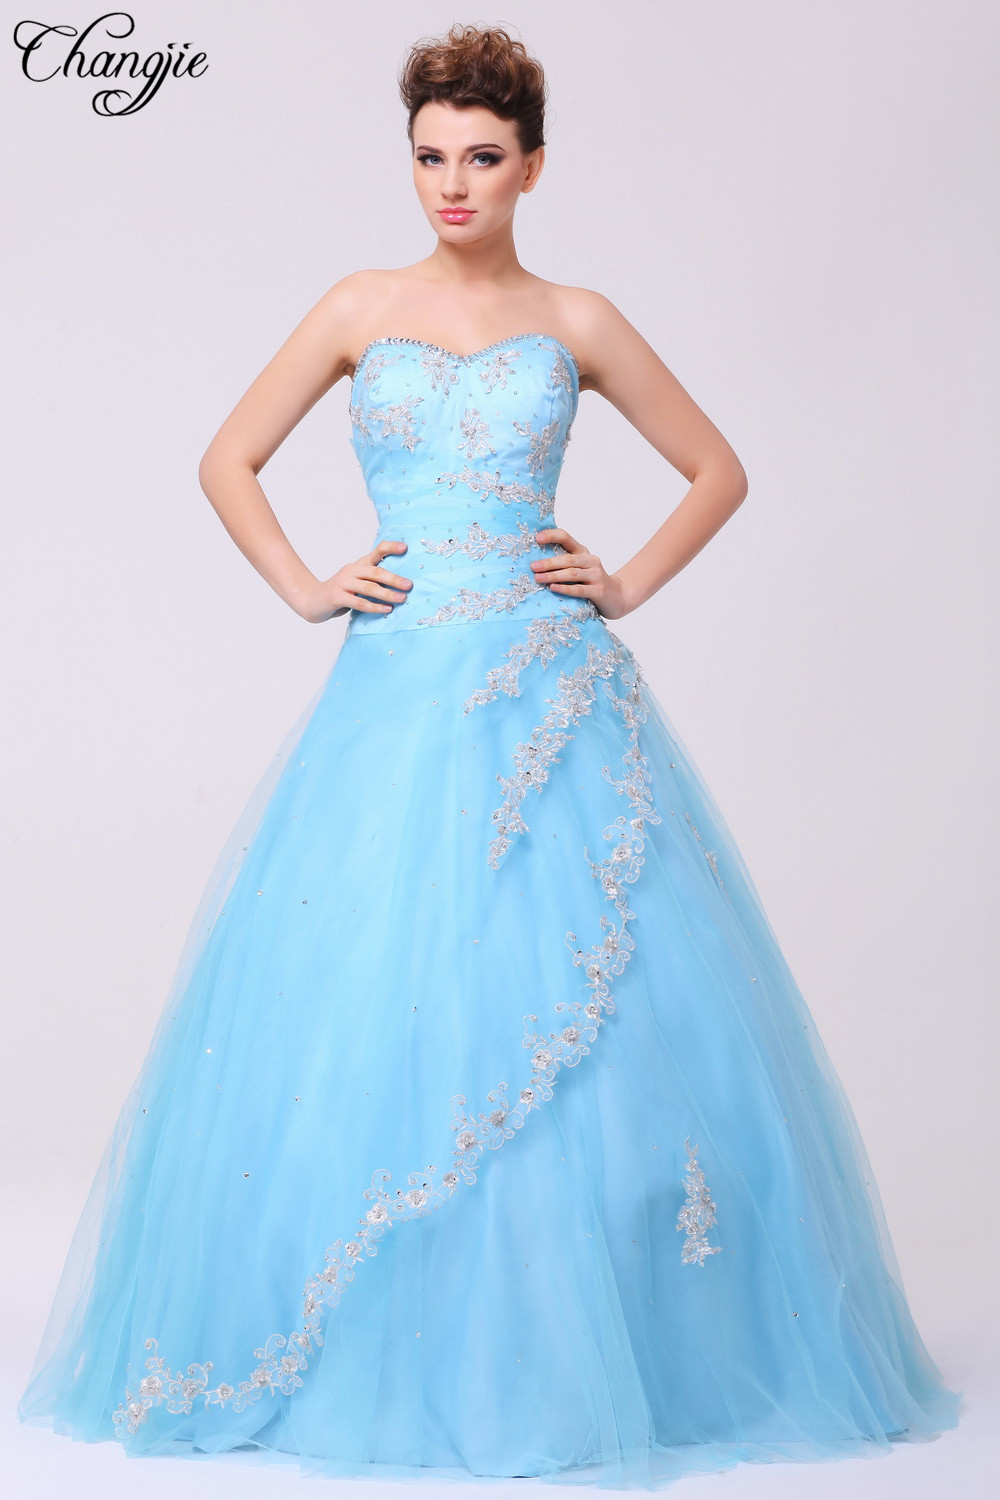 Compare Prices on Light Blue Prom Dress Ball Gown- Online Shopping ...